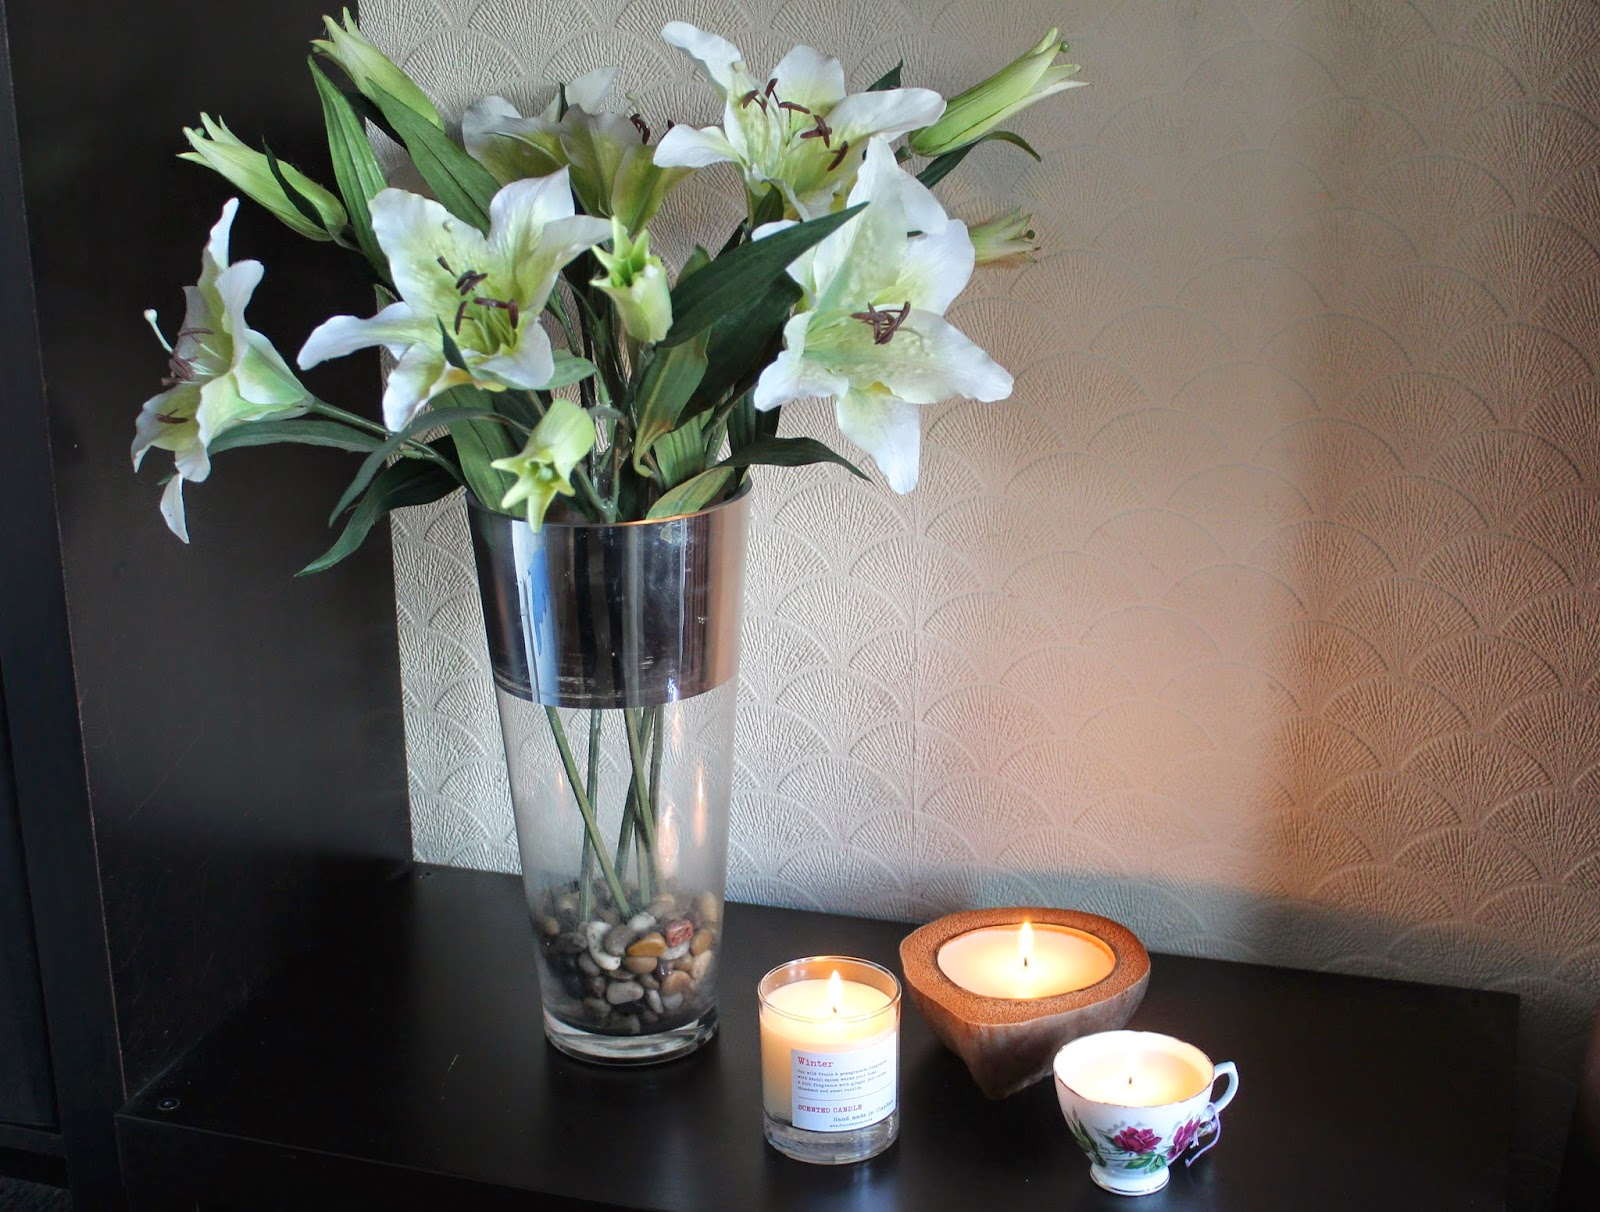 bloggers blogger blog beauty lifestyle fashion candles candle lilies make up pinterest instagram fblchat hashtag teacup vintage coconut home